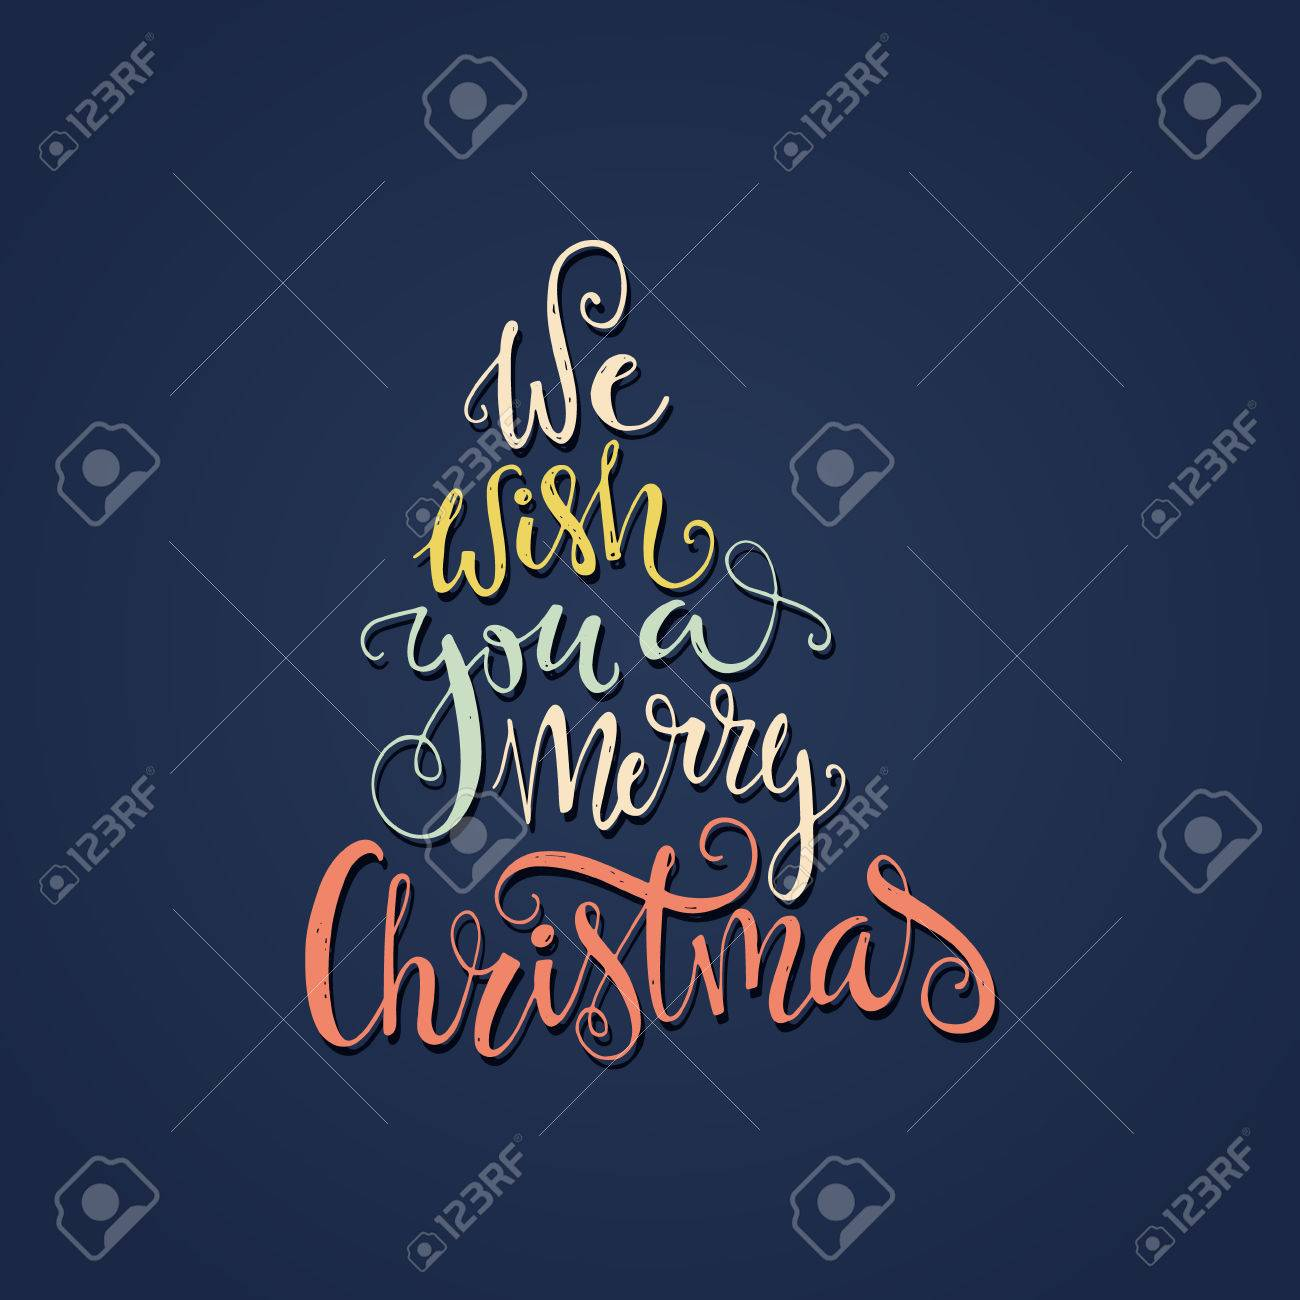 We Wish You A Merry Christmas   Quote In A Shape Of A Christmas Tree.